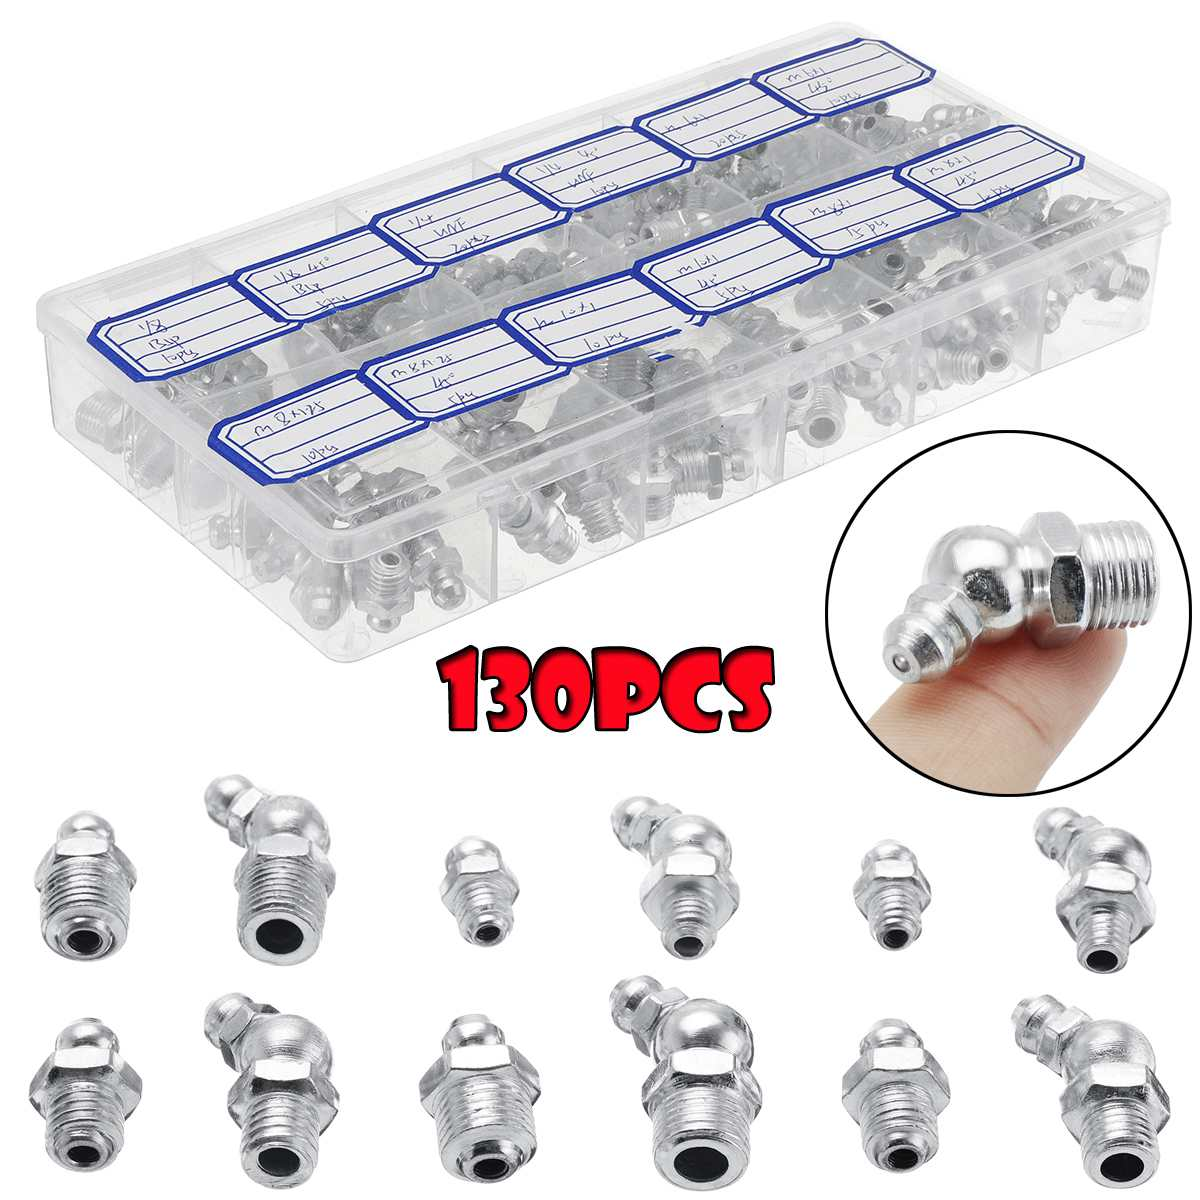 130pcs Grease Nipple Metric Imperial M6/M8/M10 BSP UNF 45° 90° 180° Metal Galvanized Assorted Box Of Grease Nipples